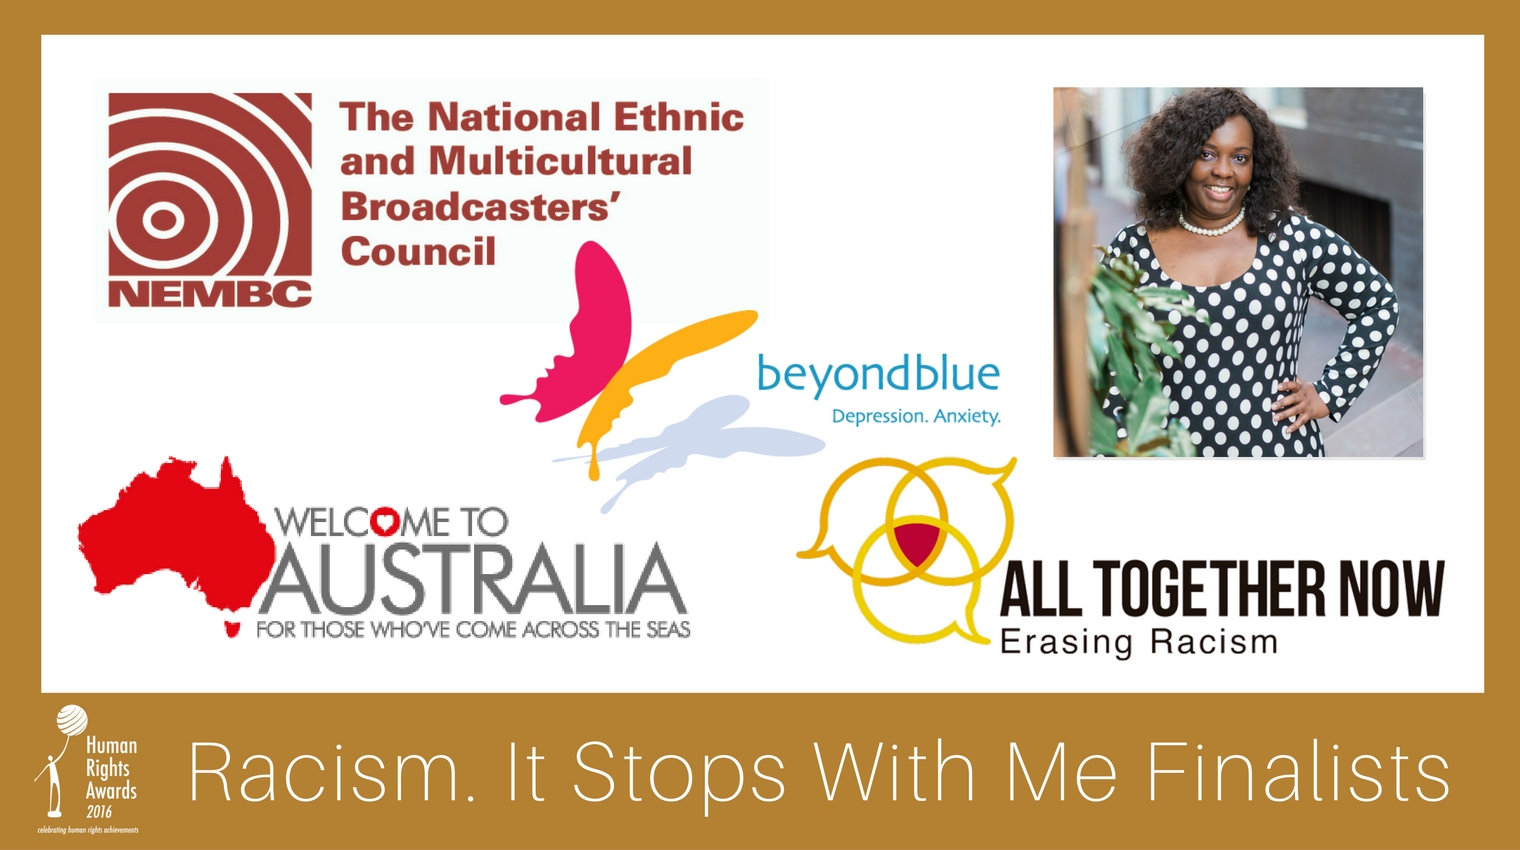 Composite Racism It Stops With Me Award finalists 2016